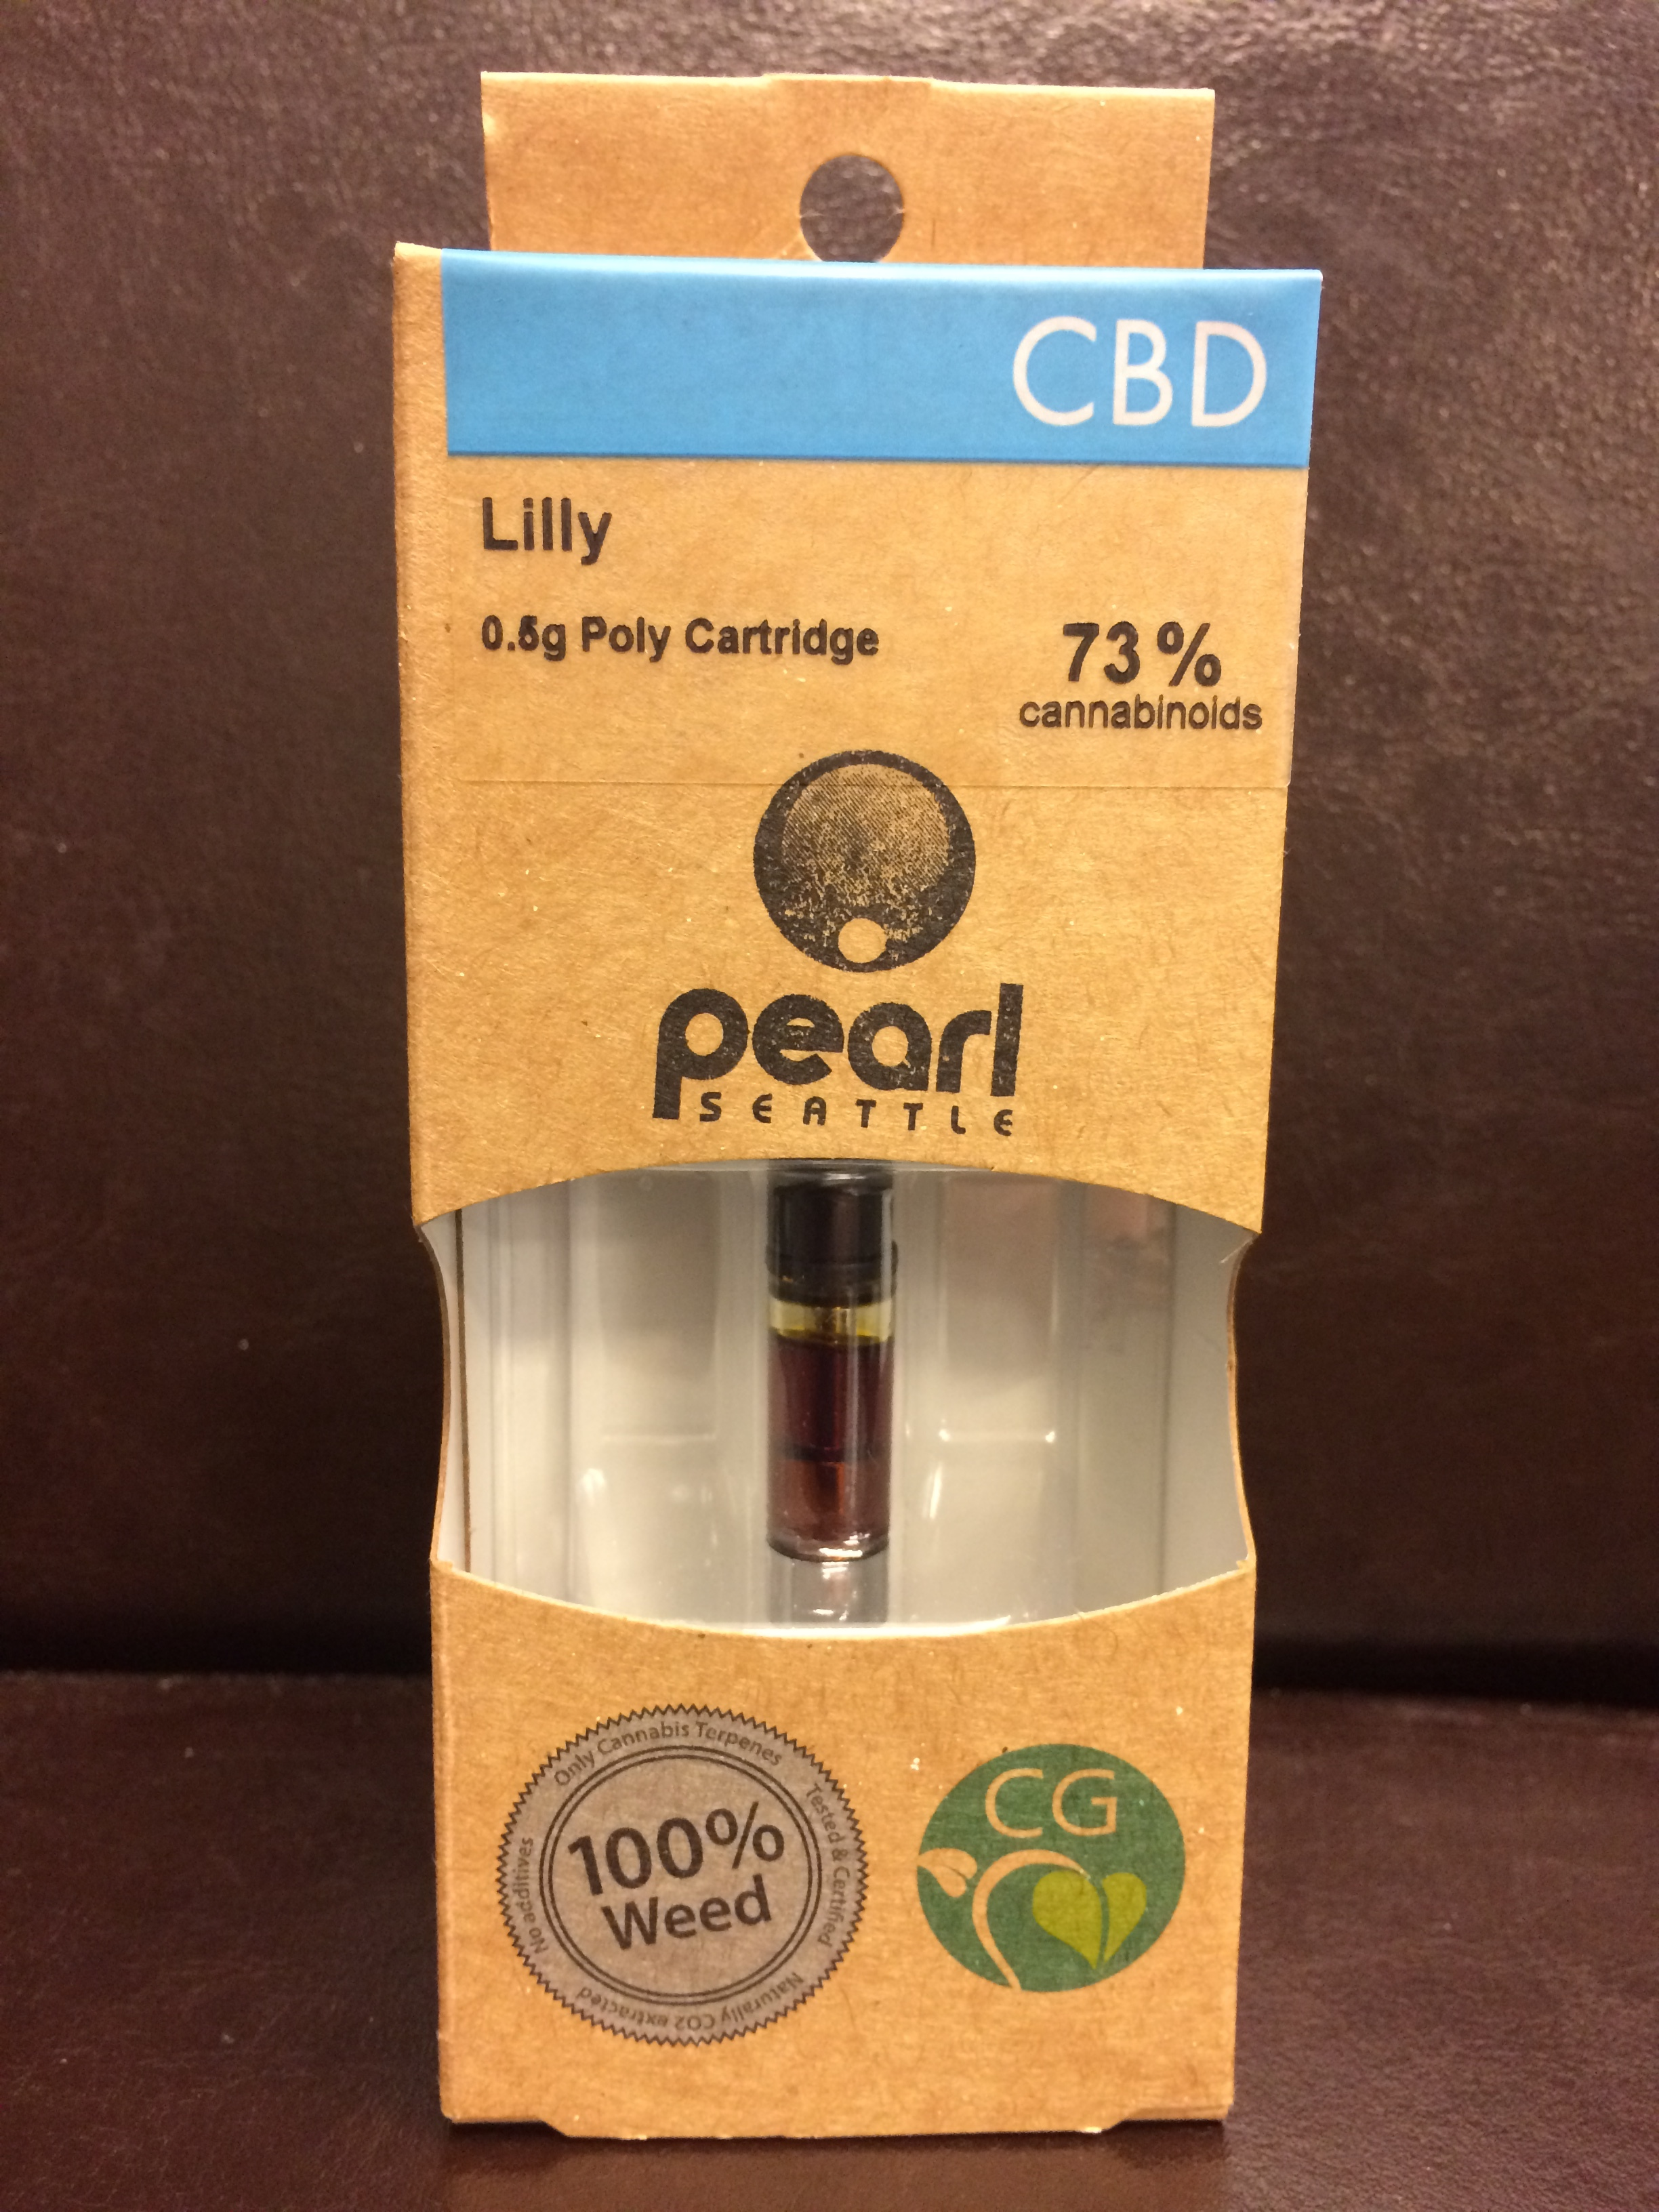 Pearl Extracts Clean Green Certified High CBD CO2 Oil Vape Cartridge